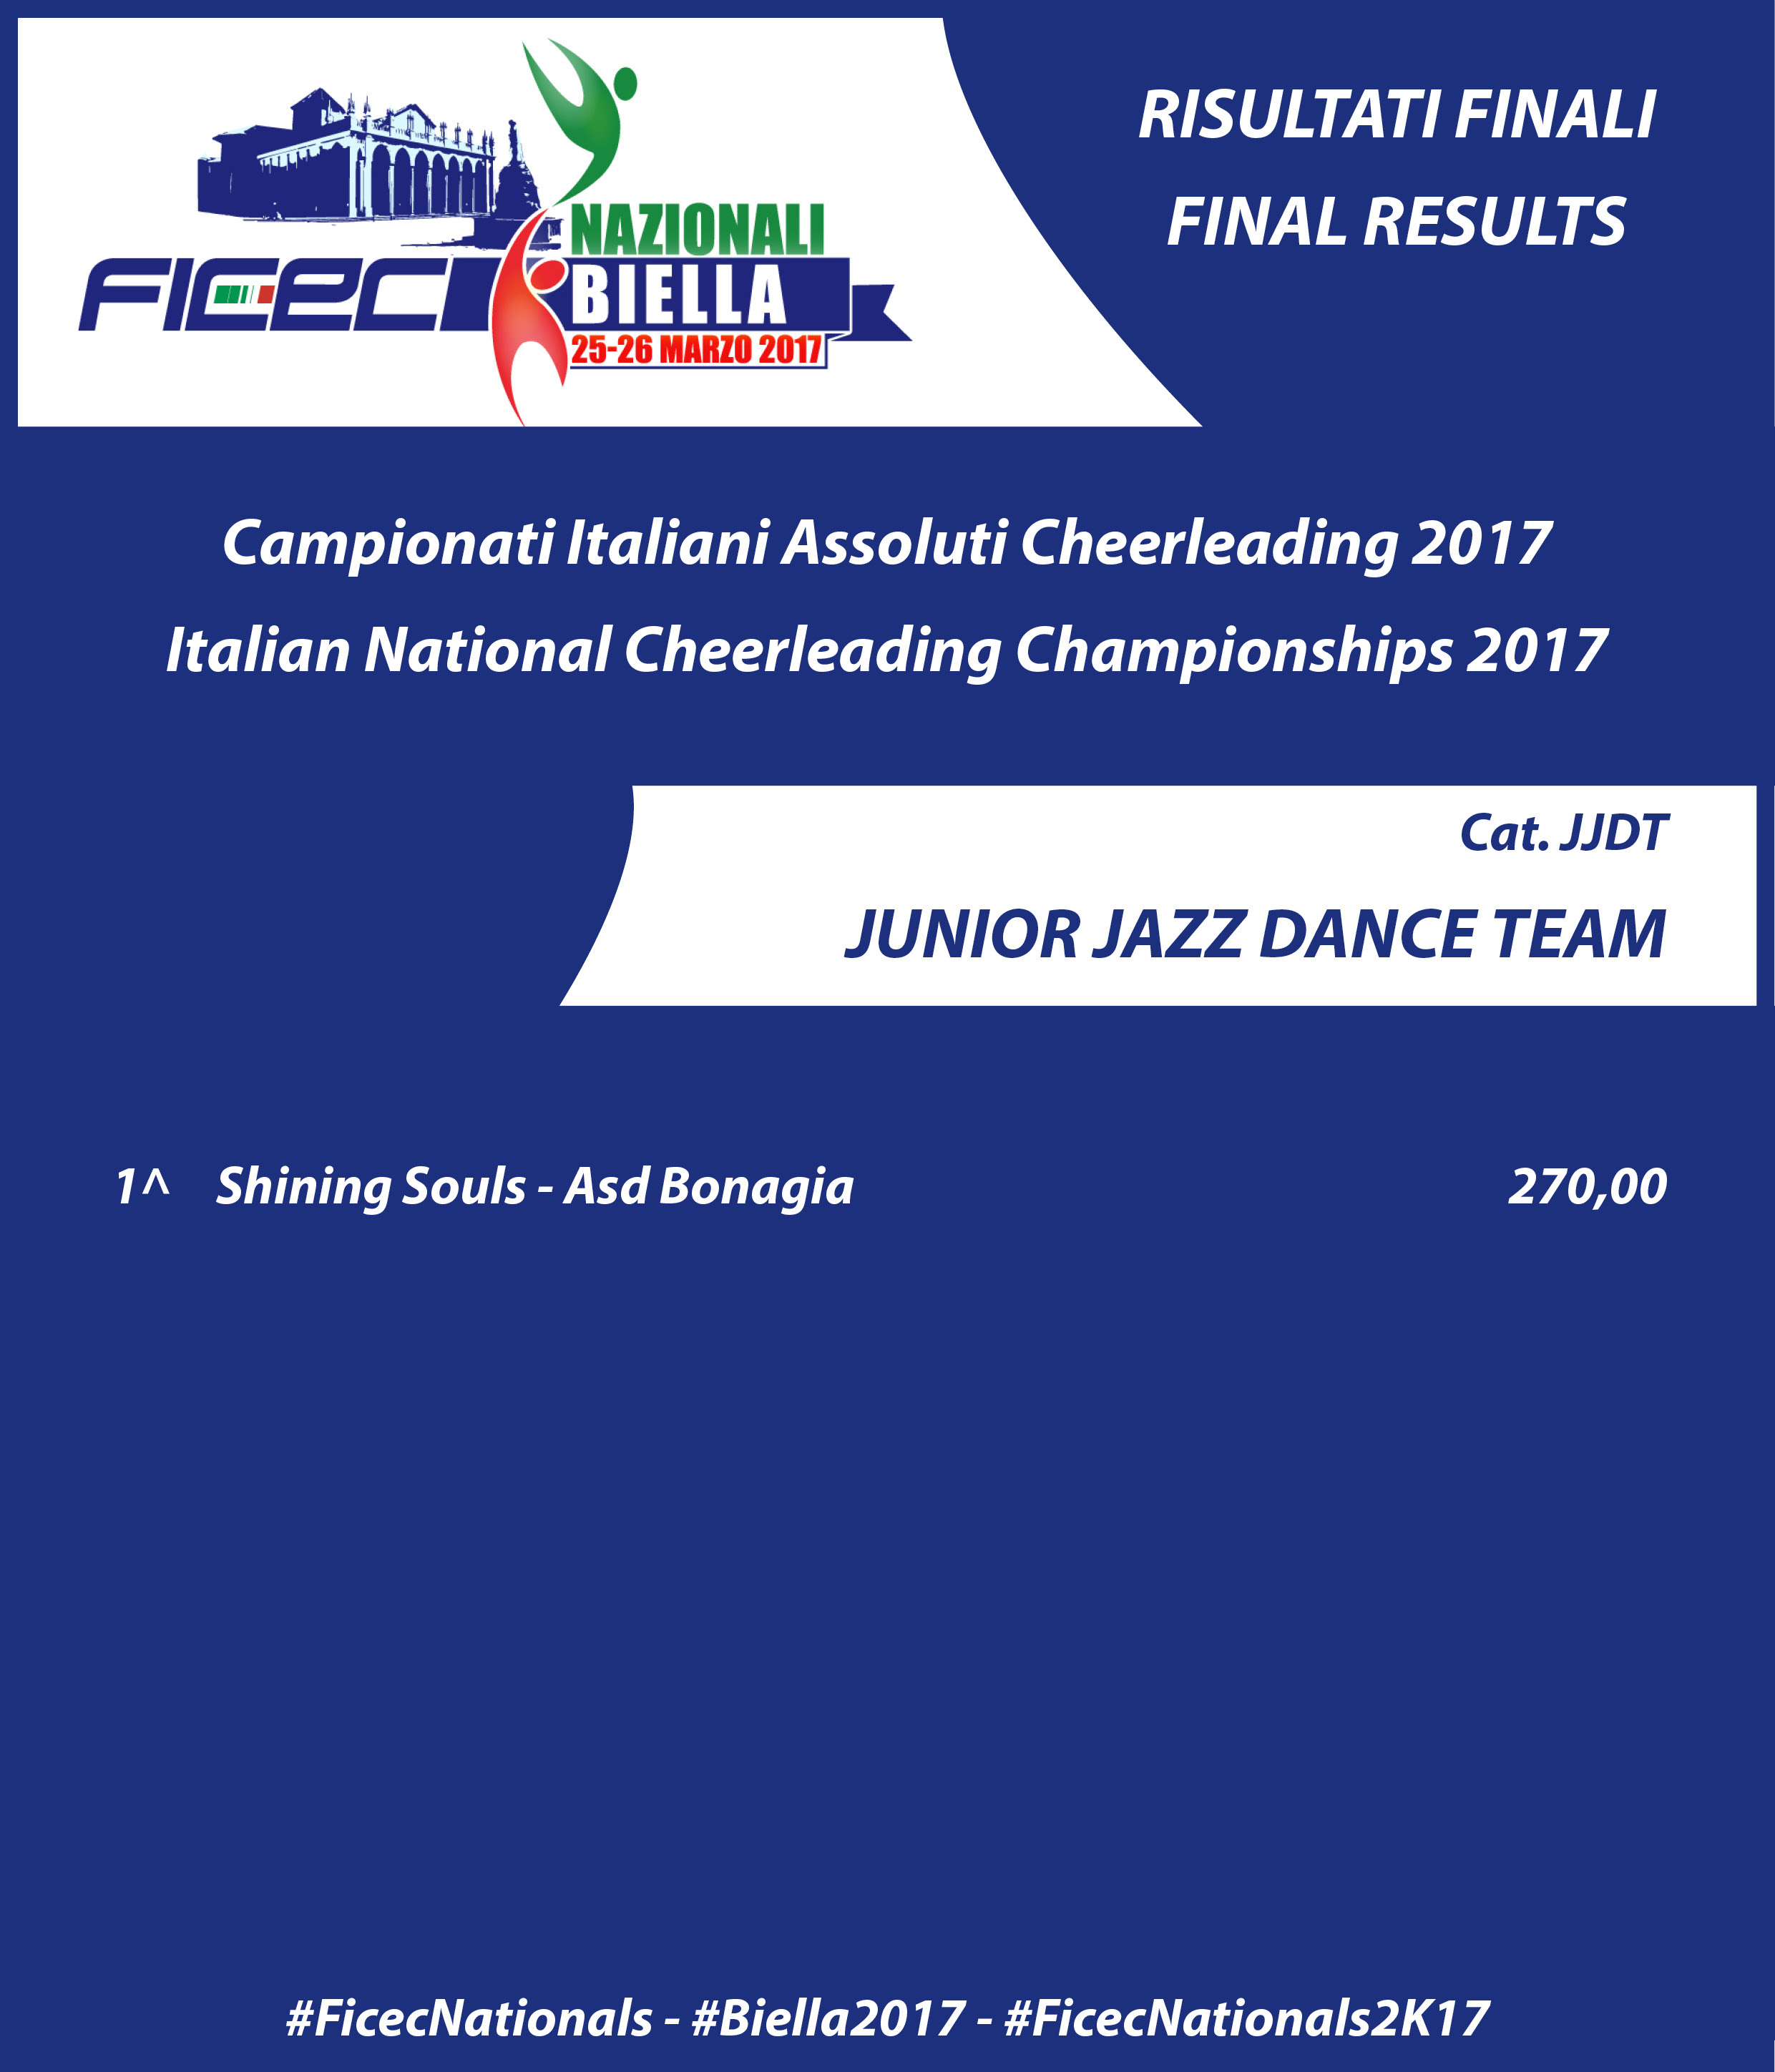 RESULTS nationals 2017 JJDT